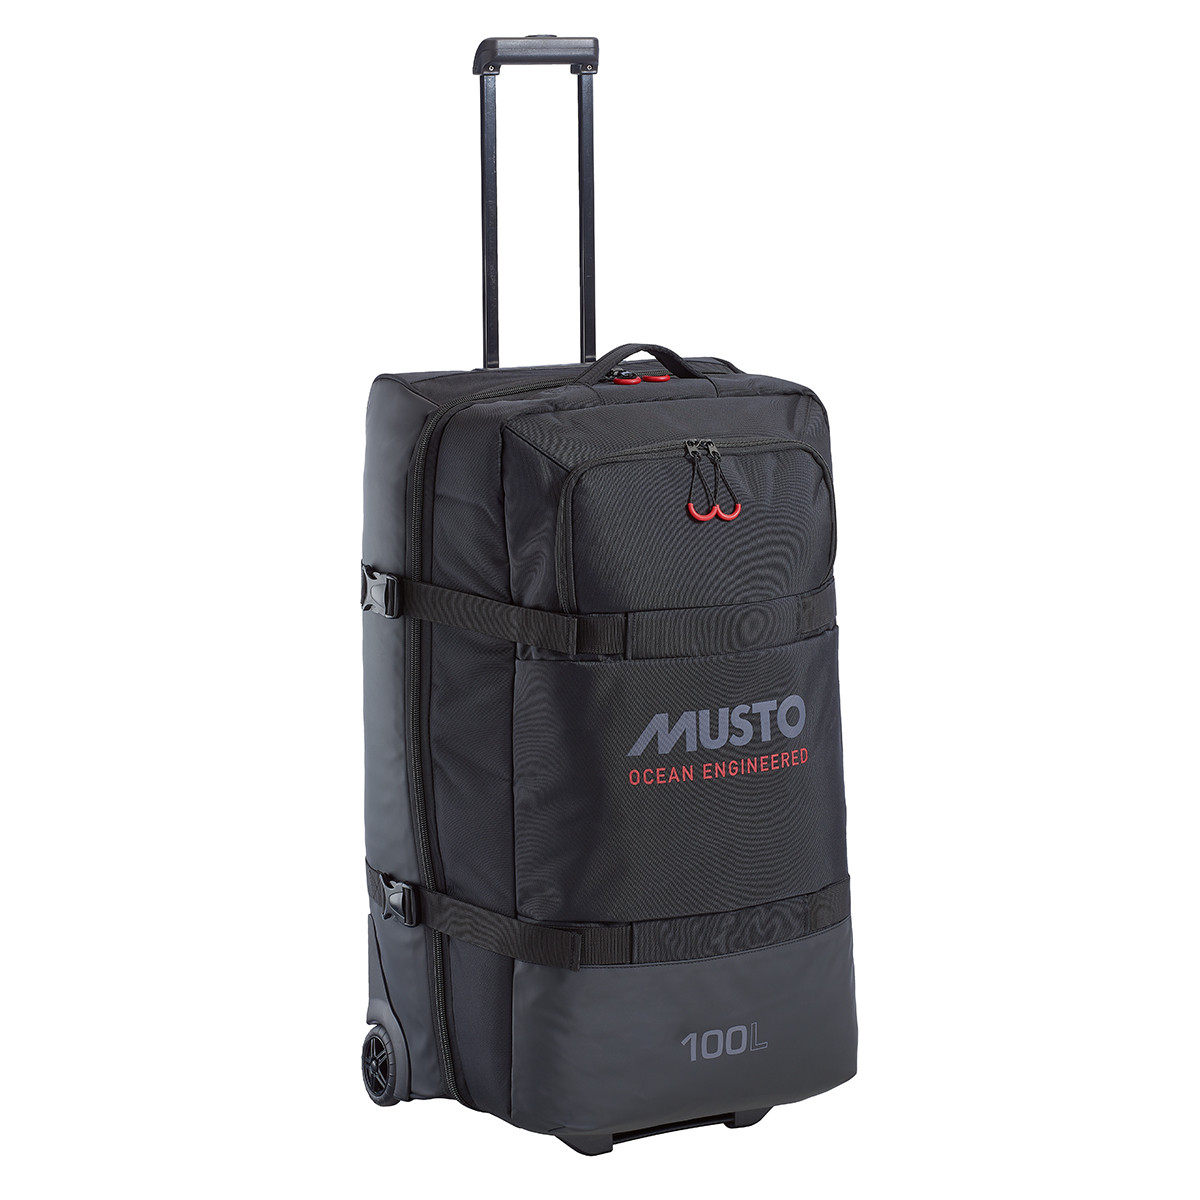 Musto Clam Case ready for travel.